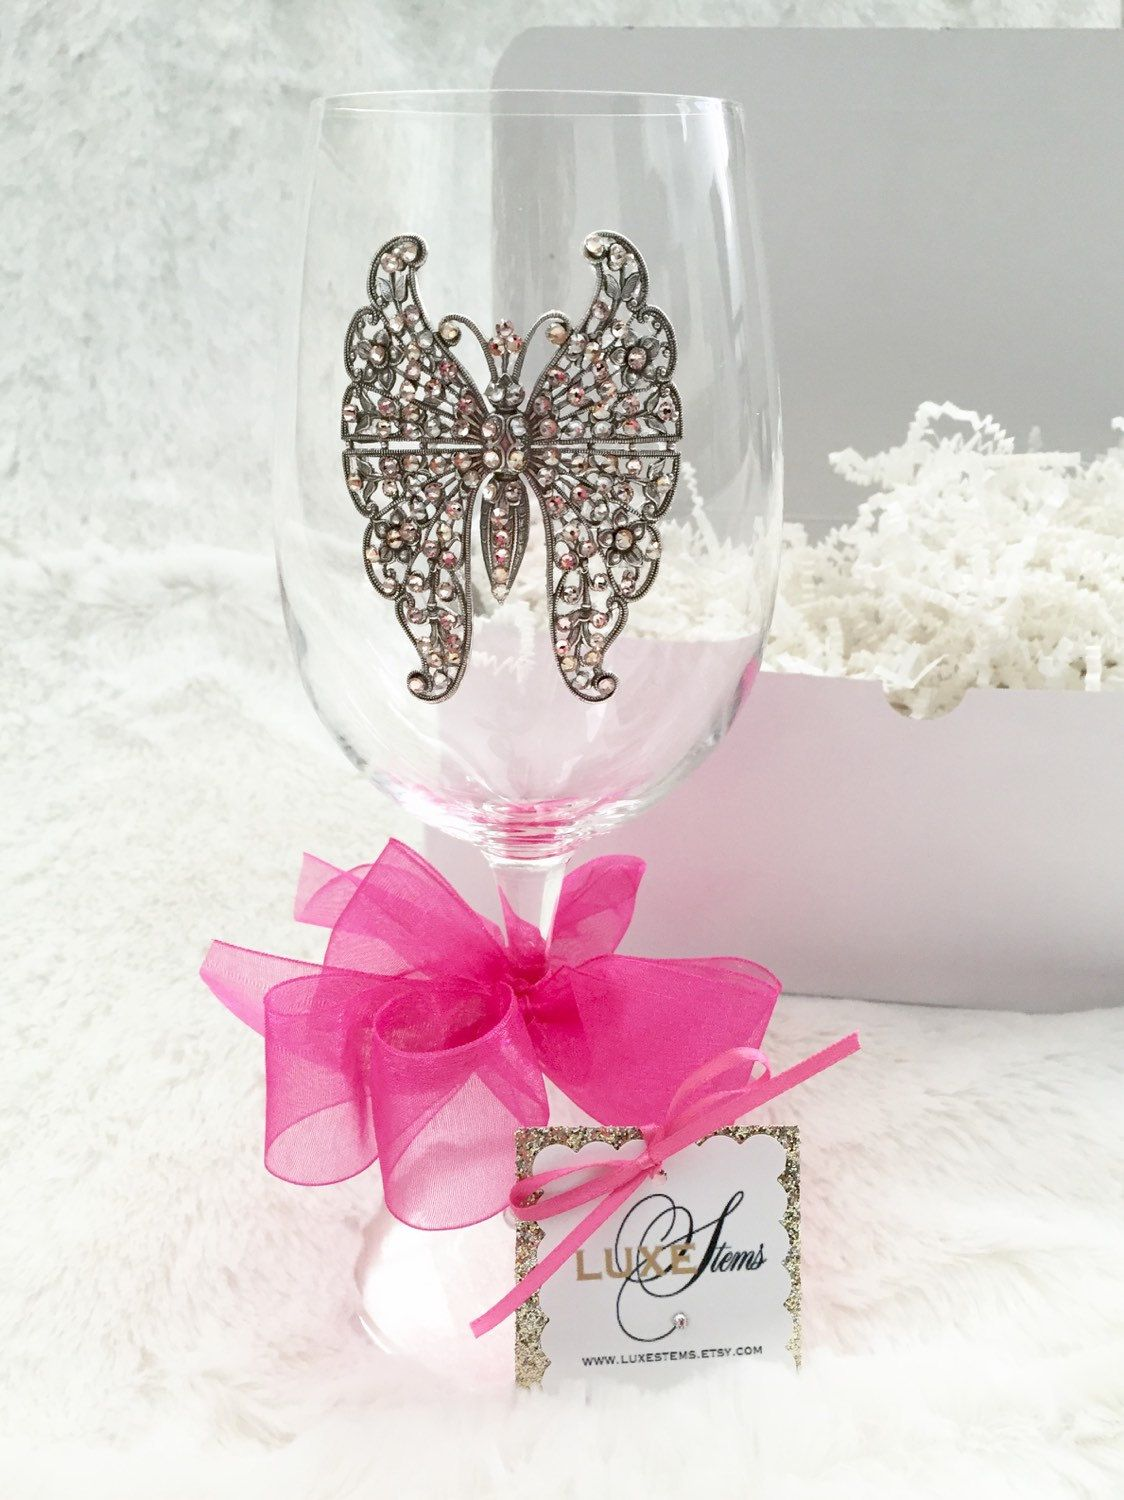 Butterfly...Adorned Crystal Wine Glass With An Exquisite Filigree ...